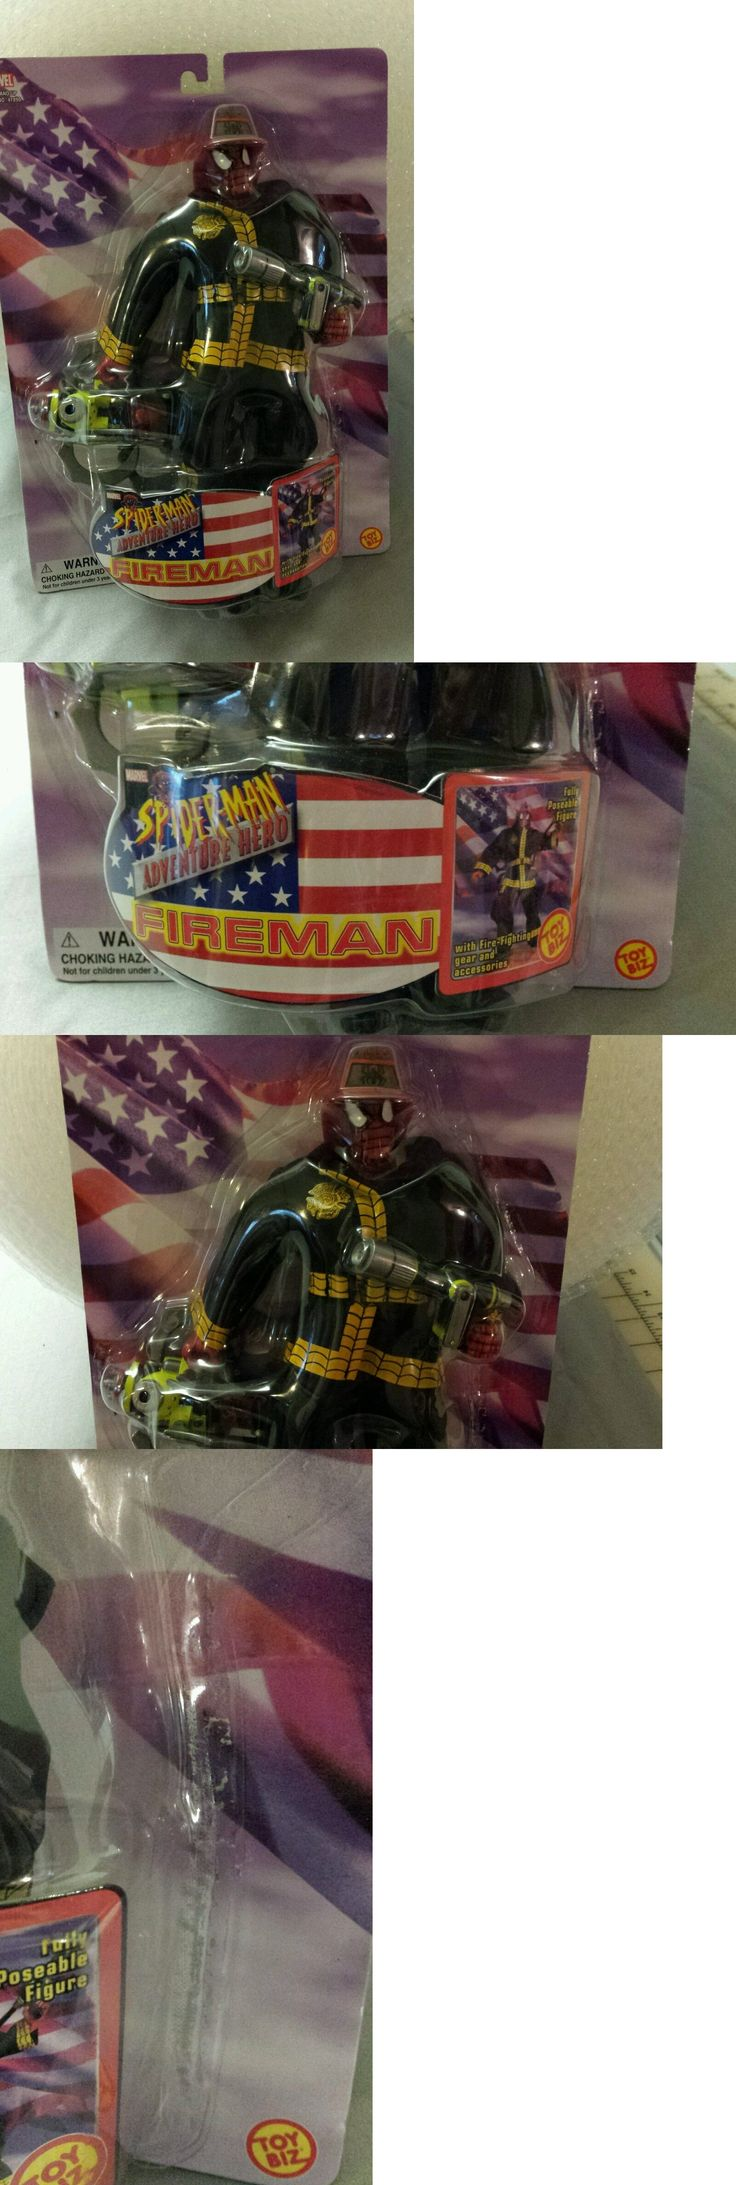 Spider-Man 146094: New Toy Biz 11 Marvel Spiderman Adventure Hero Fireman 2002 Great Condition! -> BUY IT NOW ONLY: $60.99 on eBay!